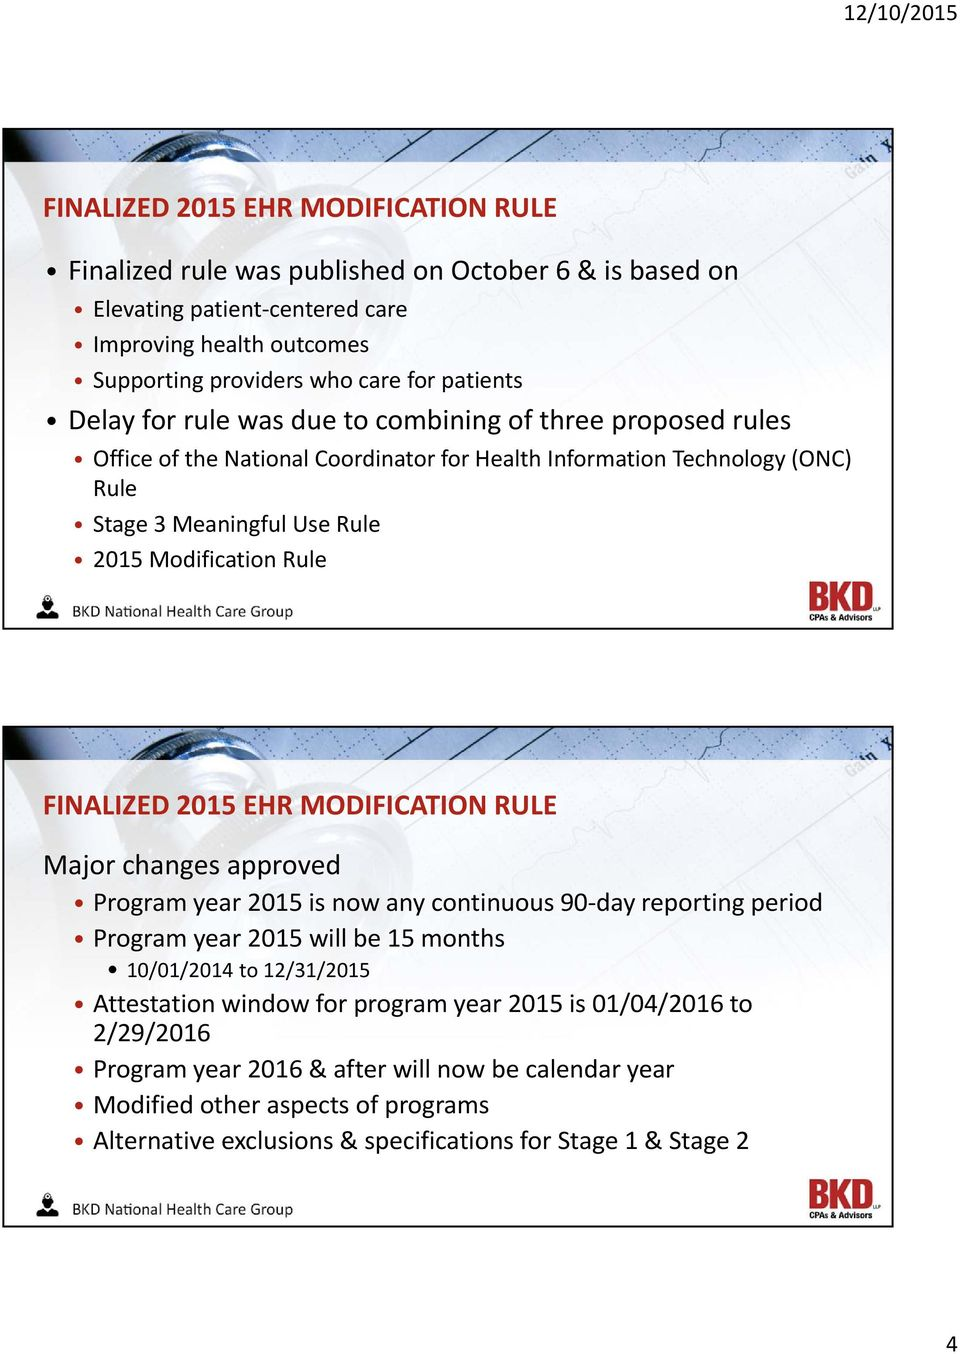 FINALIZED 2015 EHR MODIFICATION RULE Major changes approved Program year 2015 is now any continuous 90-day reporting period Program year 2015 will be 15 months 10/01/2014 to 12/31/2015 Attestation